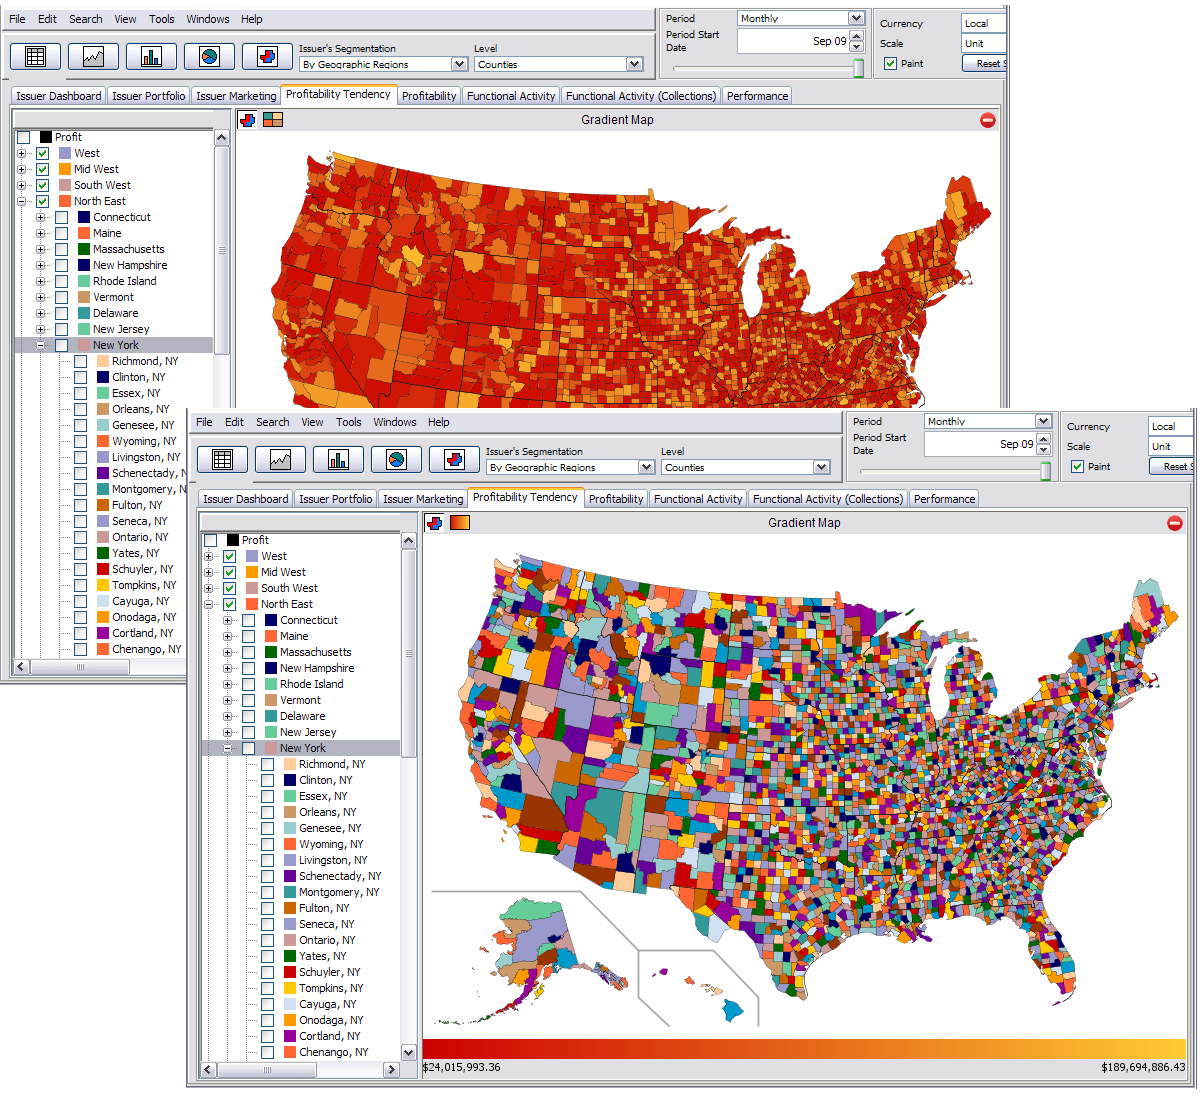 EKnowlogies CardProfit Profit Measurement For The Credit Card - Us maps that can be color coded